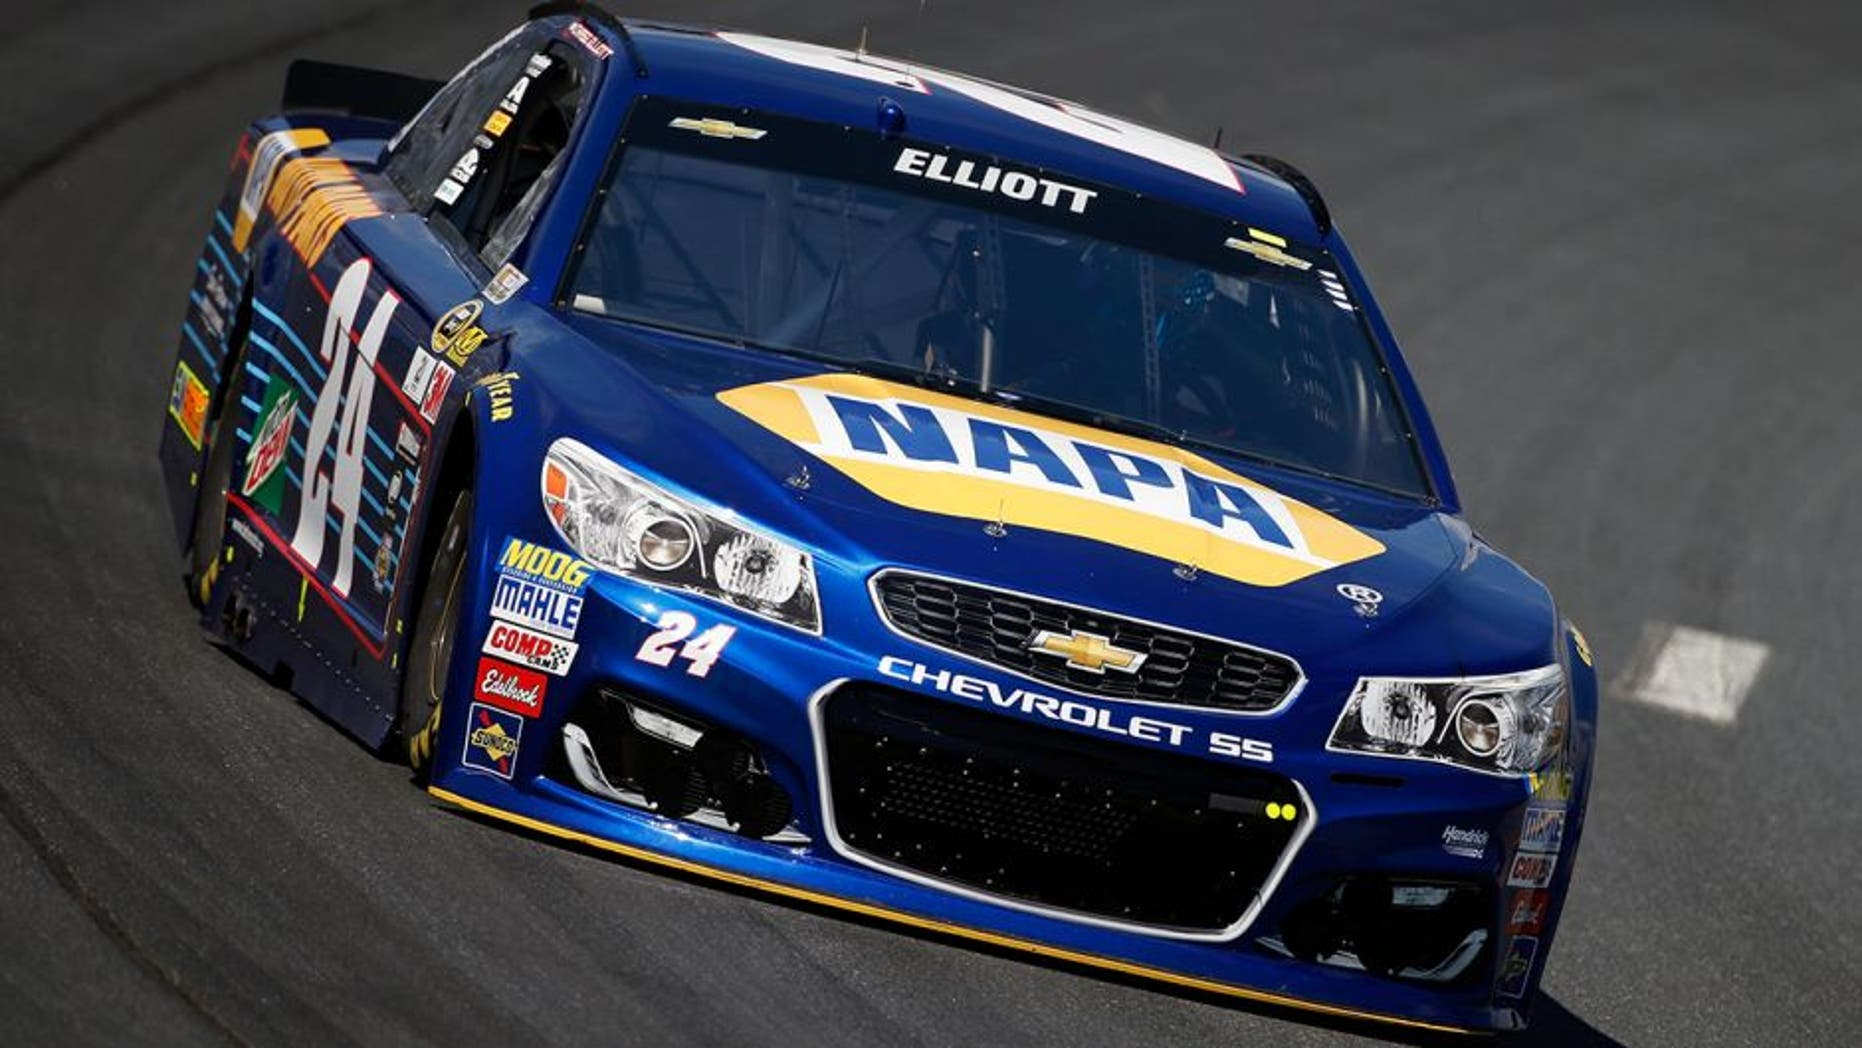 LOUDON, NH - JULY 15: Chase Elliott, driver of the #24 NAPA Auto Parts Chevrolet, practices for the NASCAR Sprint Cup Series New Hampshire 301 at New Hampshire Motor Speedway on July 16, 2016 in Loudon, New Hampshire. (Photo by Todd Warshaw/NASCAR via Getty Images)